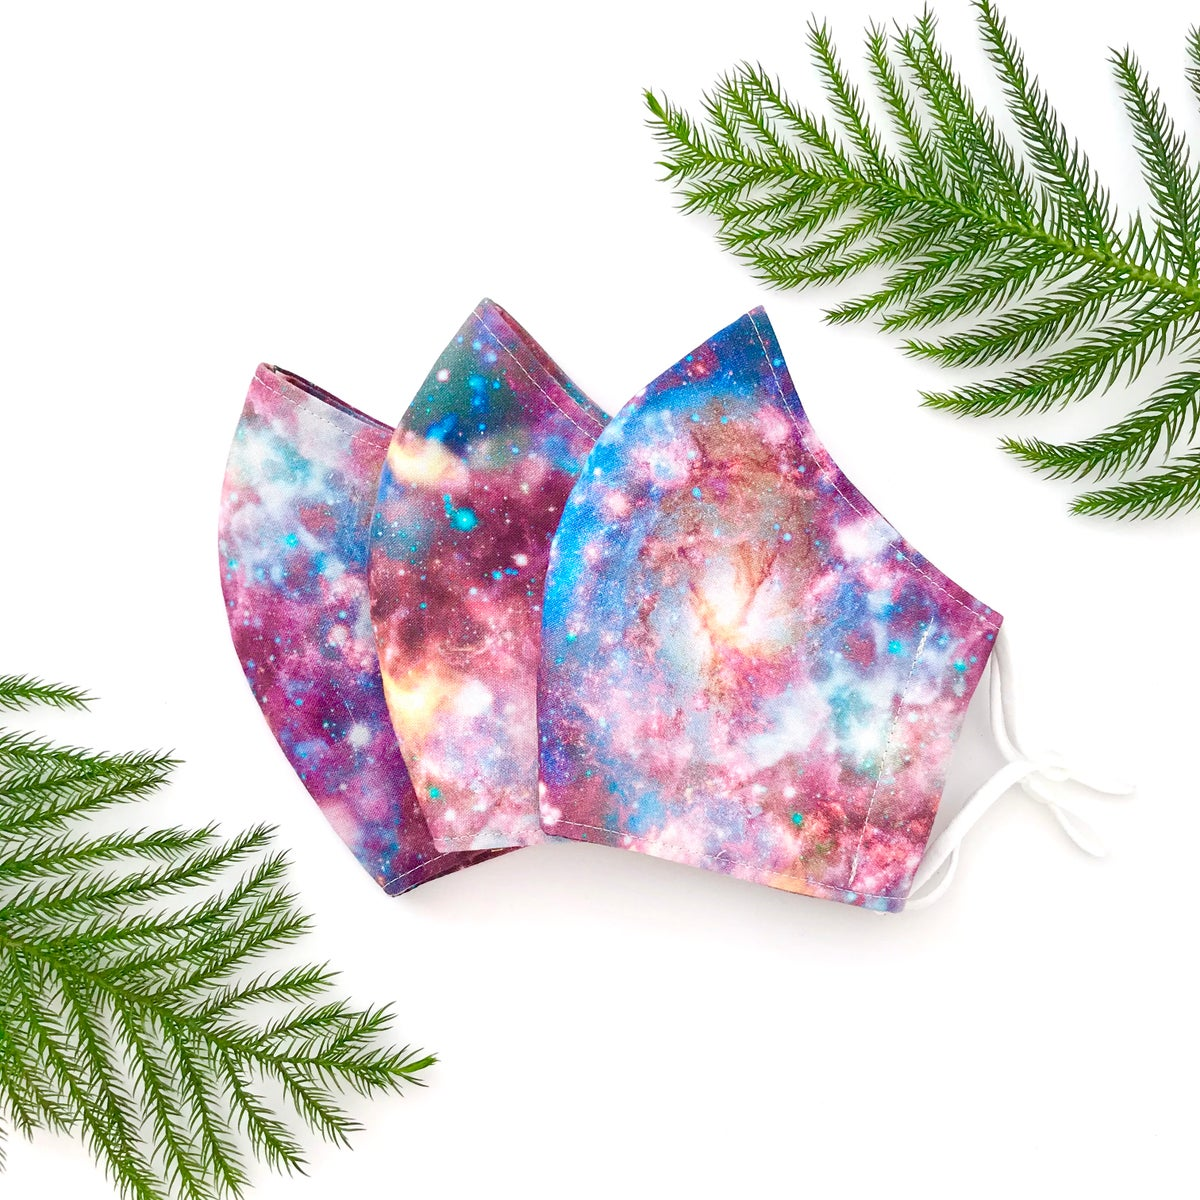 Galaxy Print - Triple Layer Fitted Cotton Face Mask (with Ties or Elastic Loops)